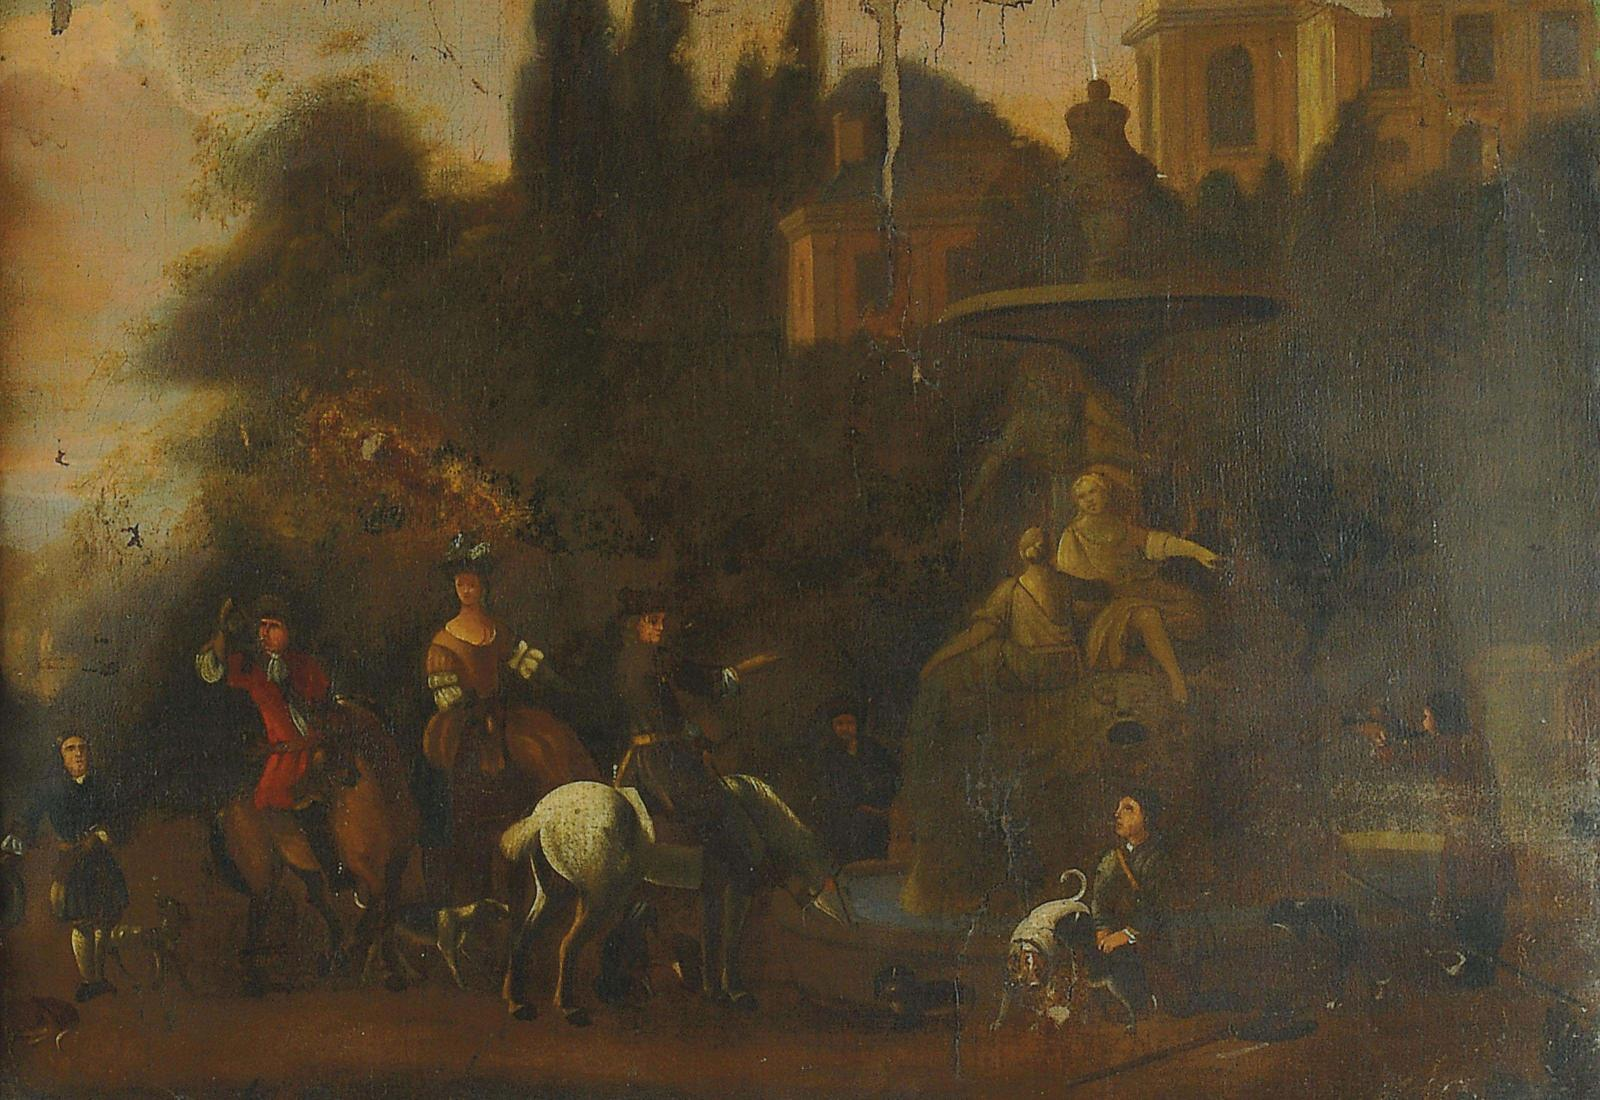 A hawking party at rest before an Italiante fountain - Manner of Dirck Stoop (c.1615-1686)